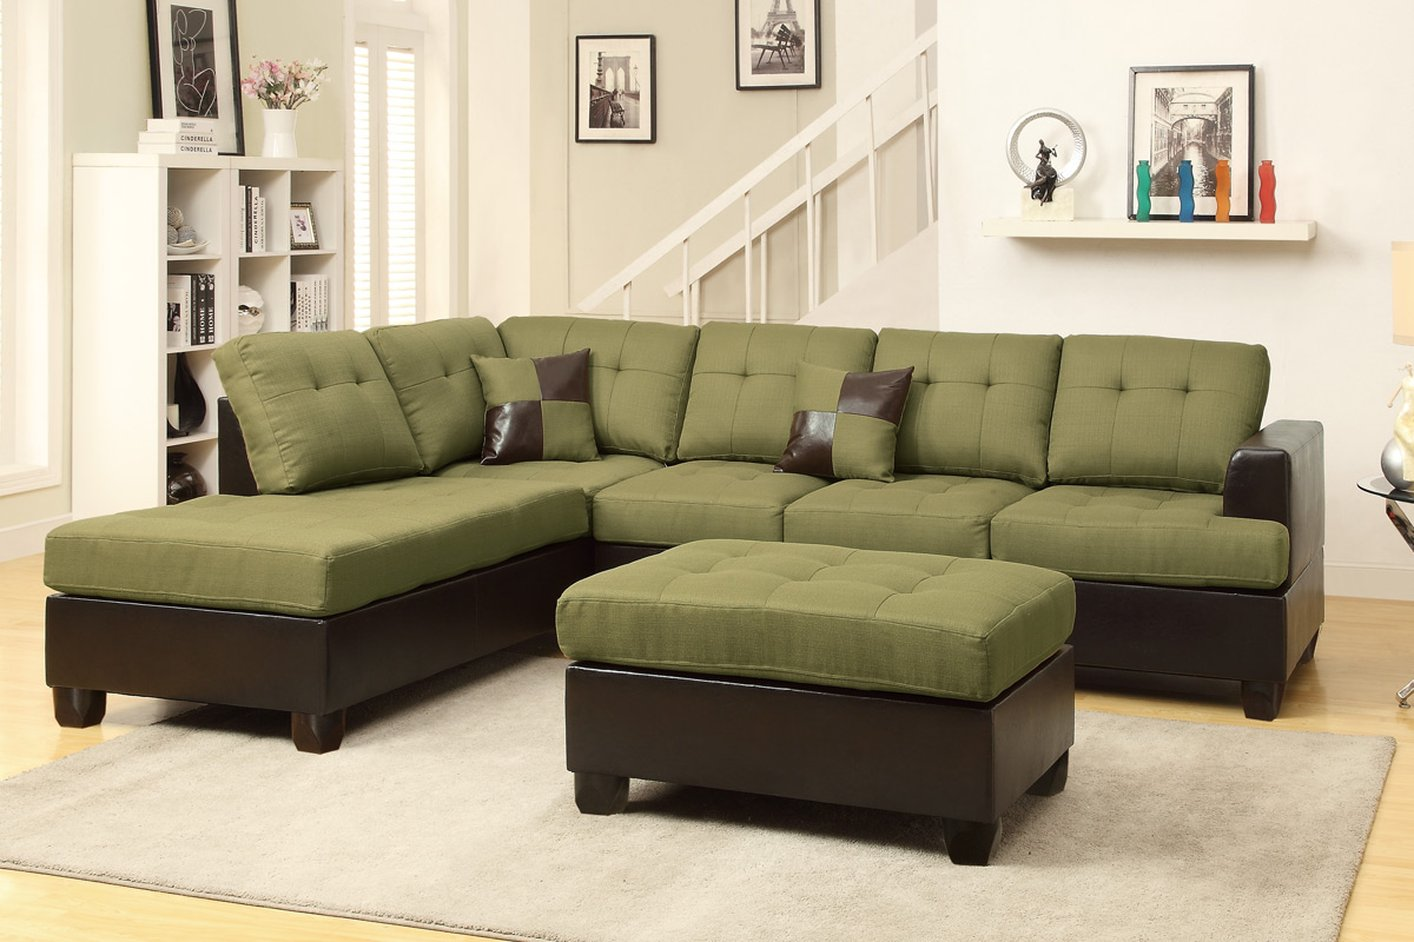 Poundex Moss F7604 Green Fabric Sectional Sofa And Ottoman Steal A Sofa Furniture Outlet Los